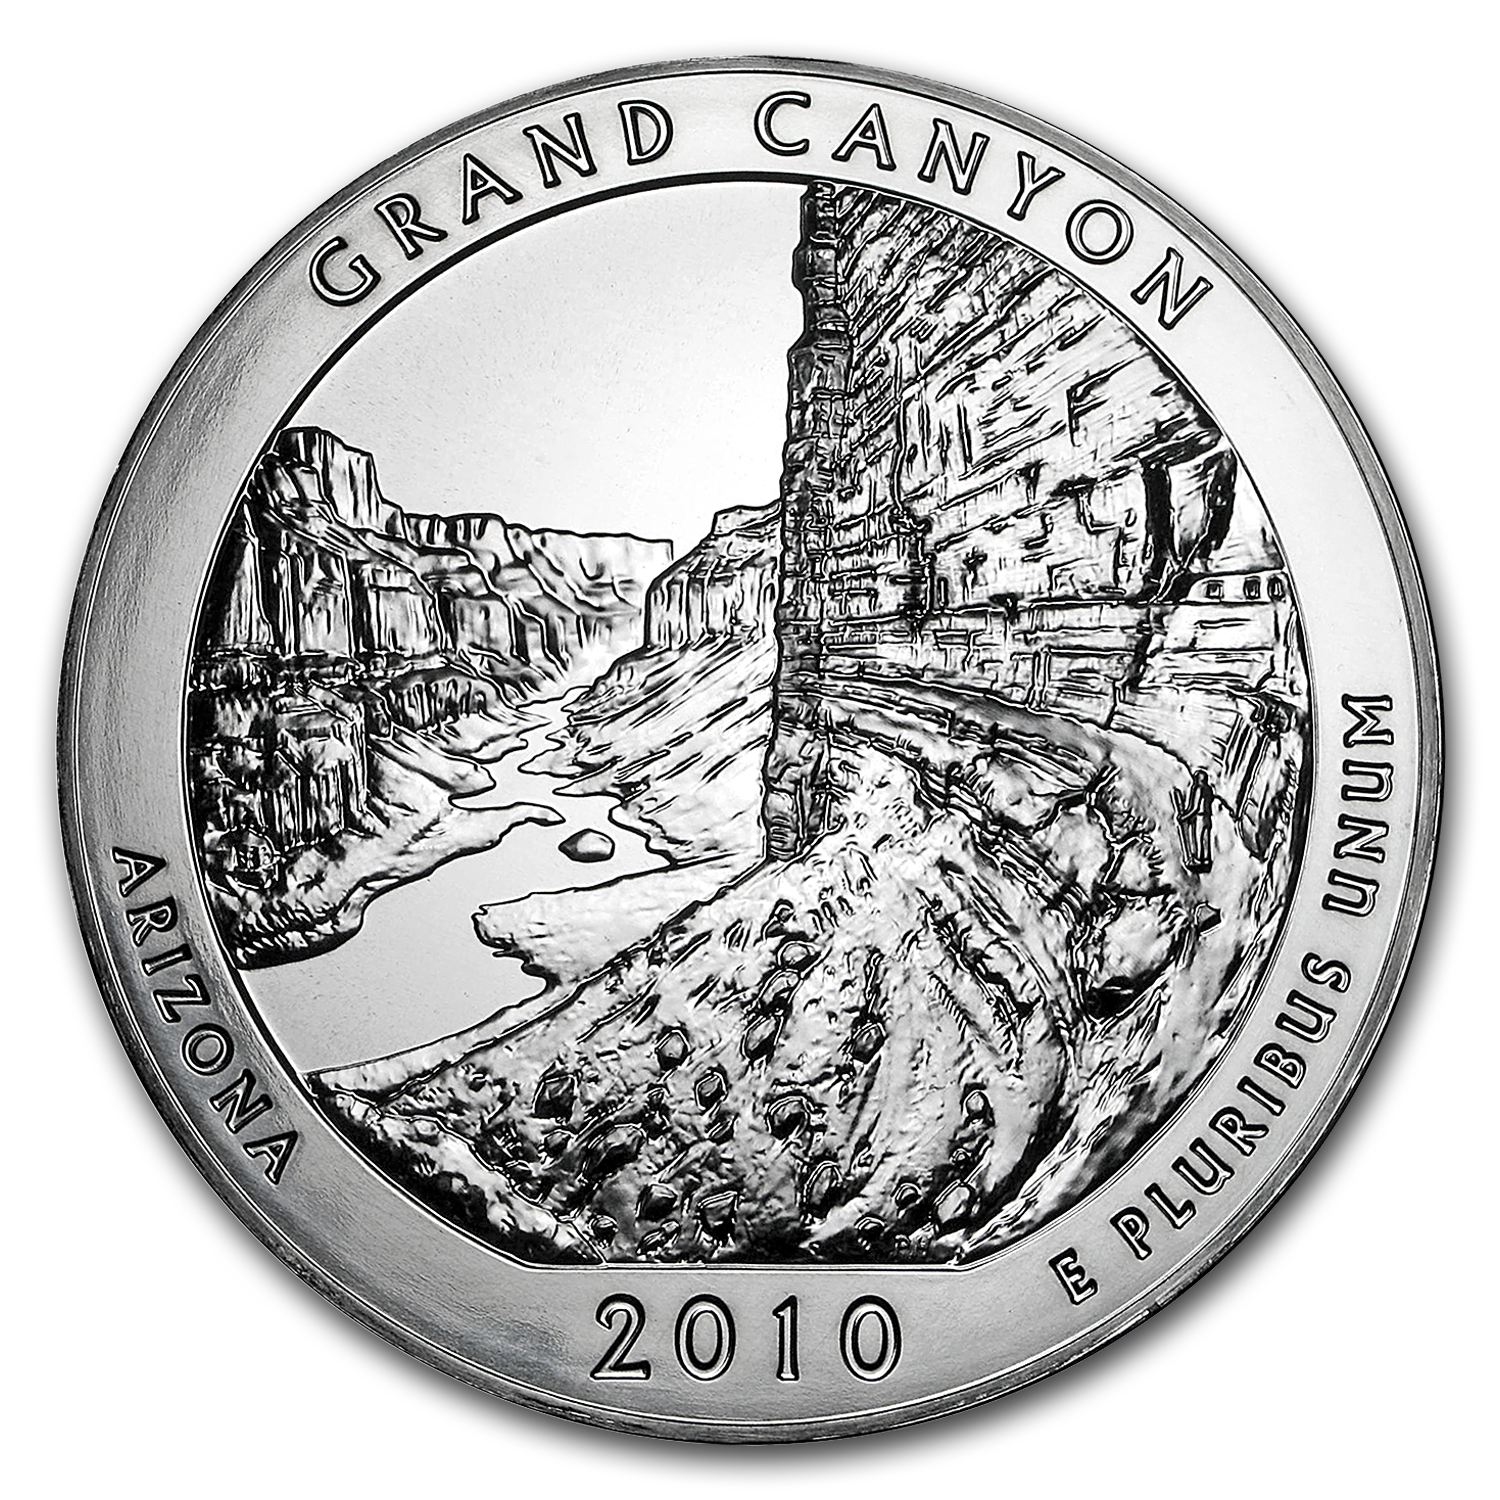 2010 5 oz Silver ATB Grand Canyon National Park, AZ